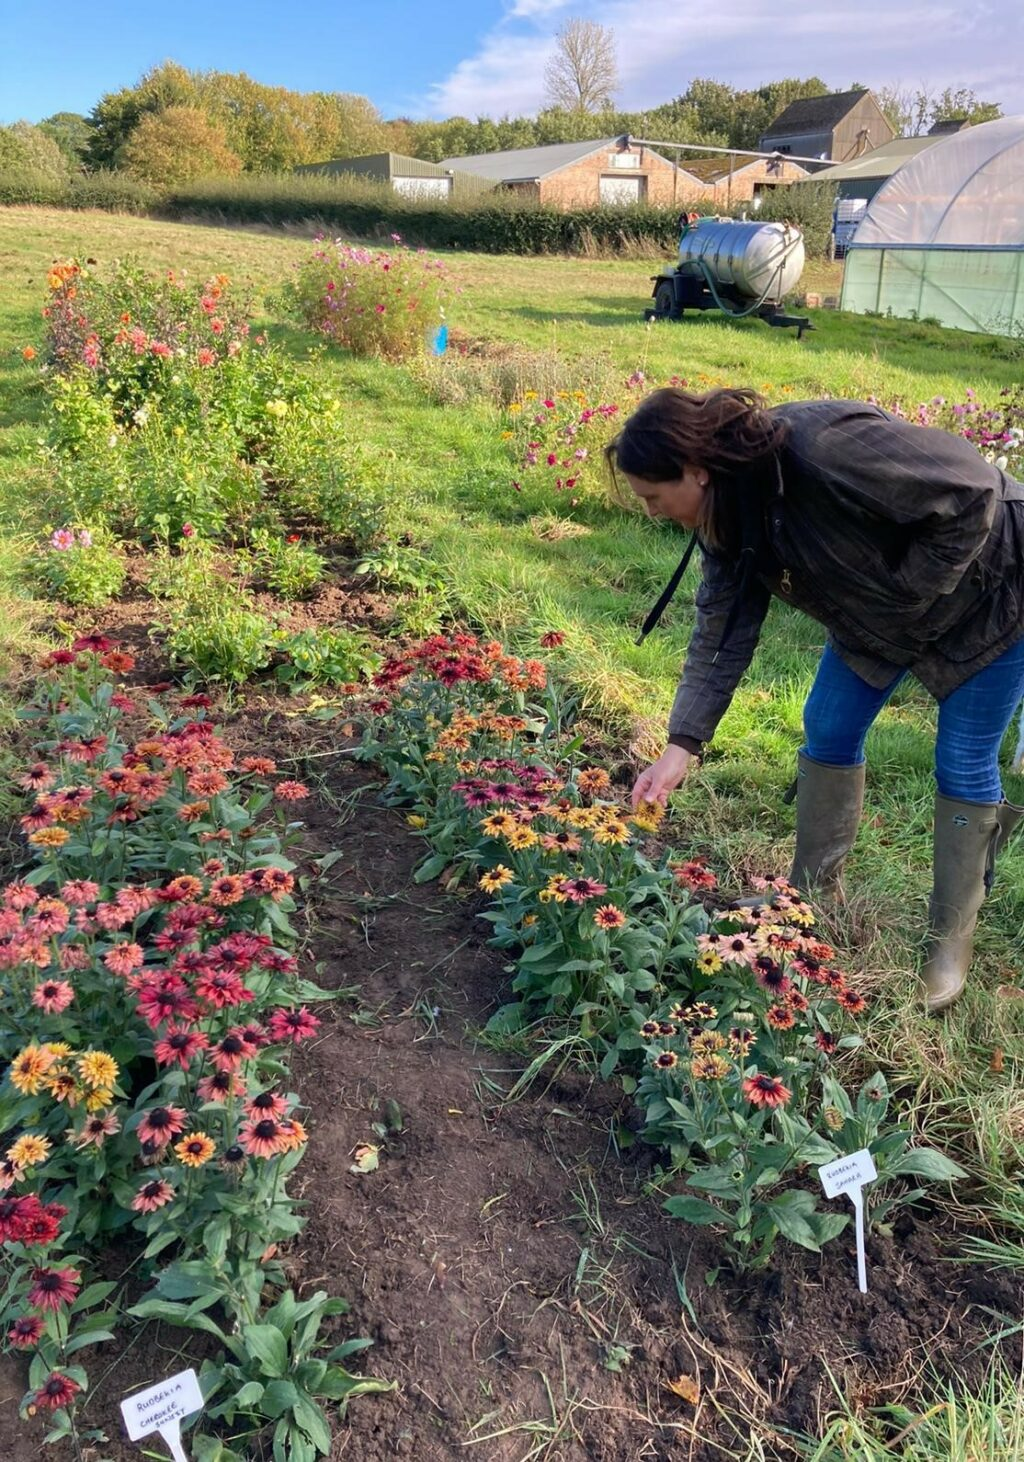 Josie of Brown's British Flowers, Cambridgeshire, inspects her rows of rudbeckia in the flower field. Photo by Petals and Amazon.